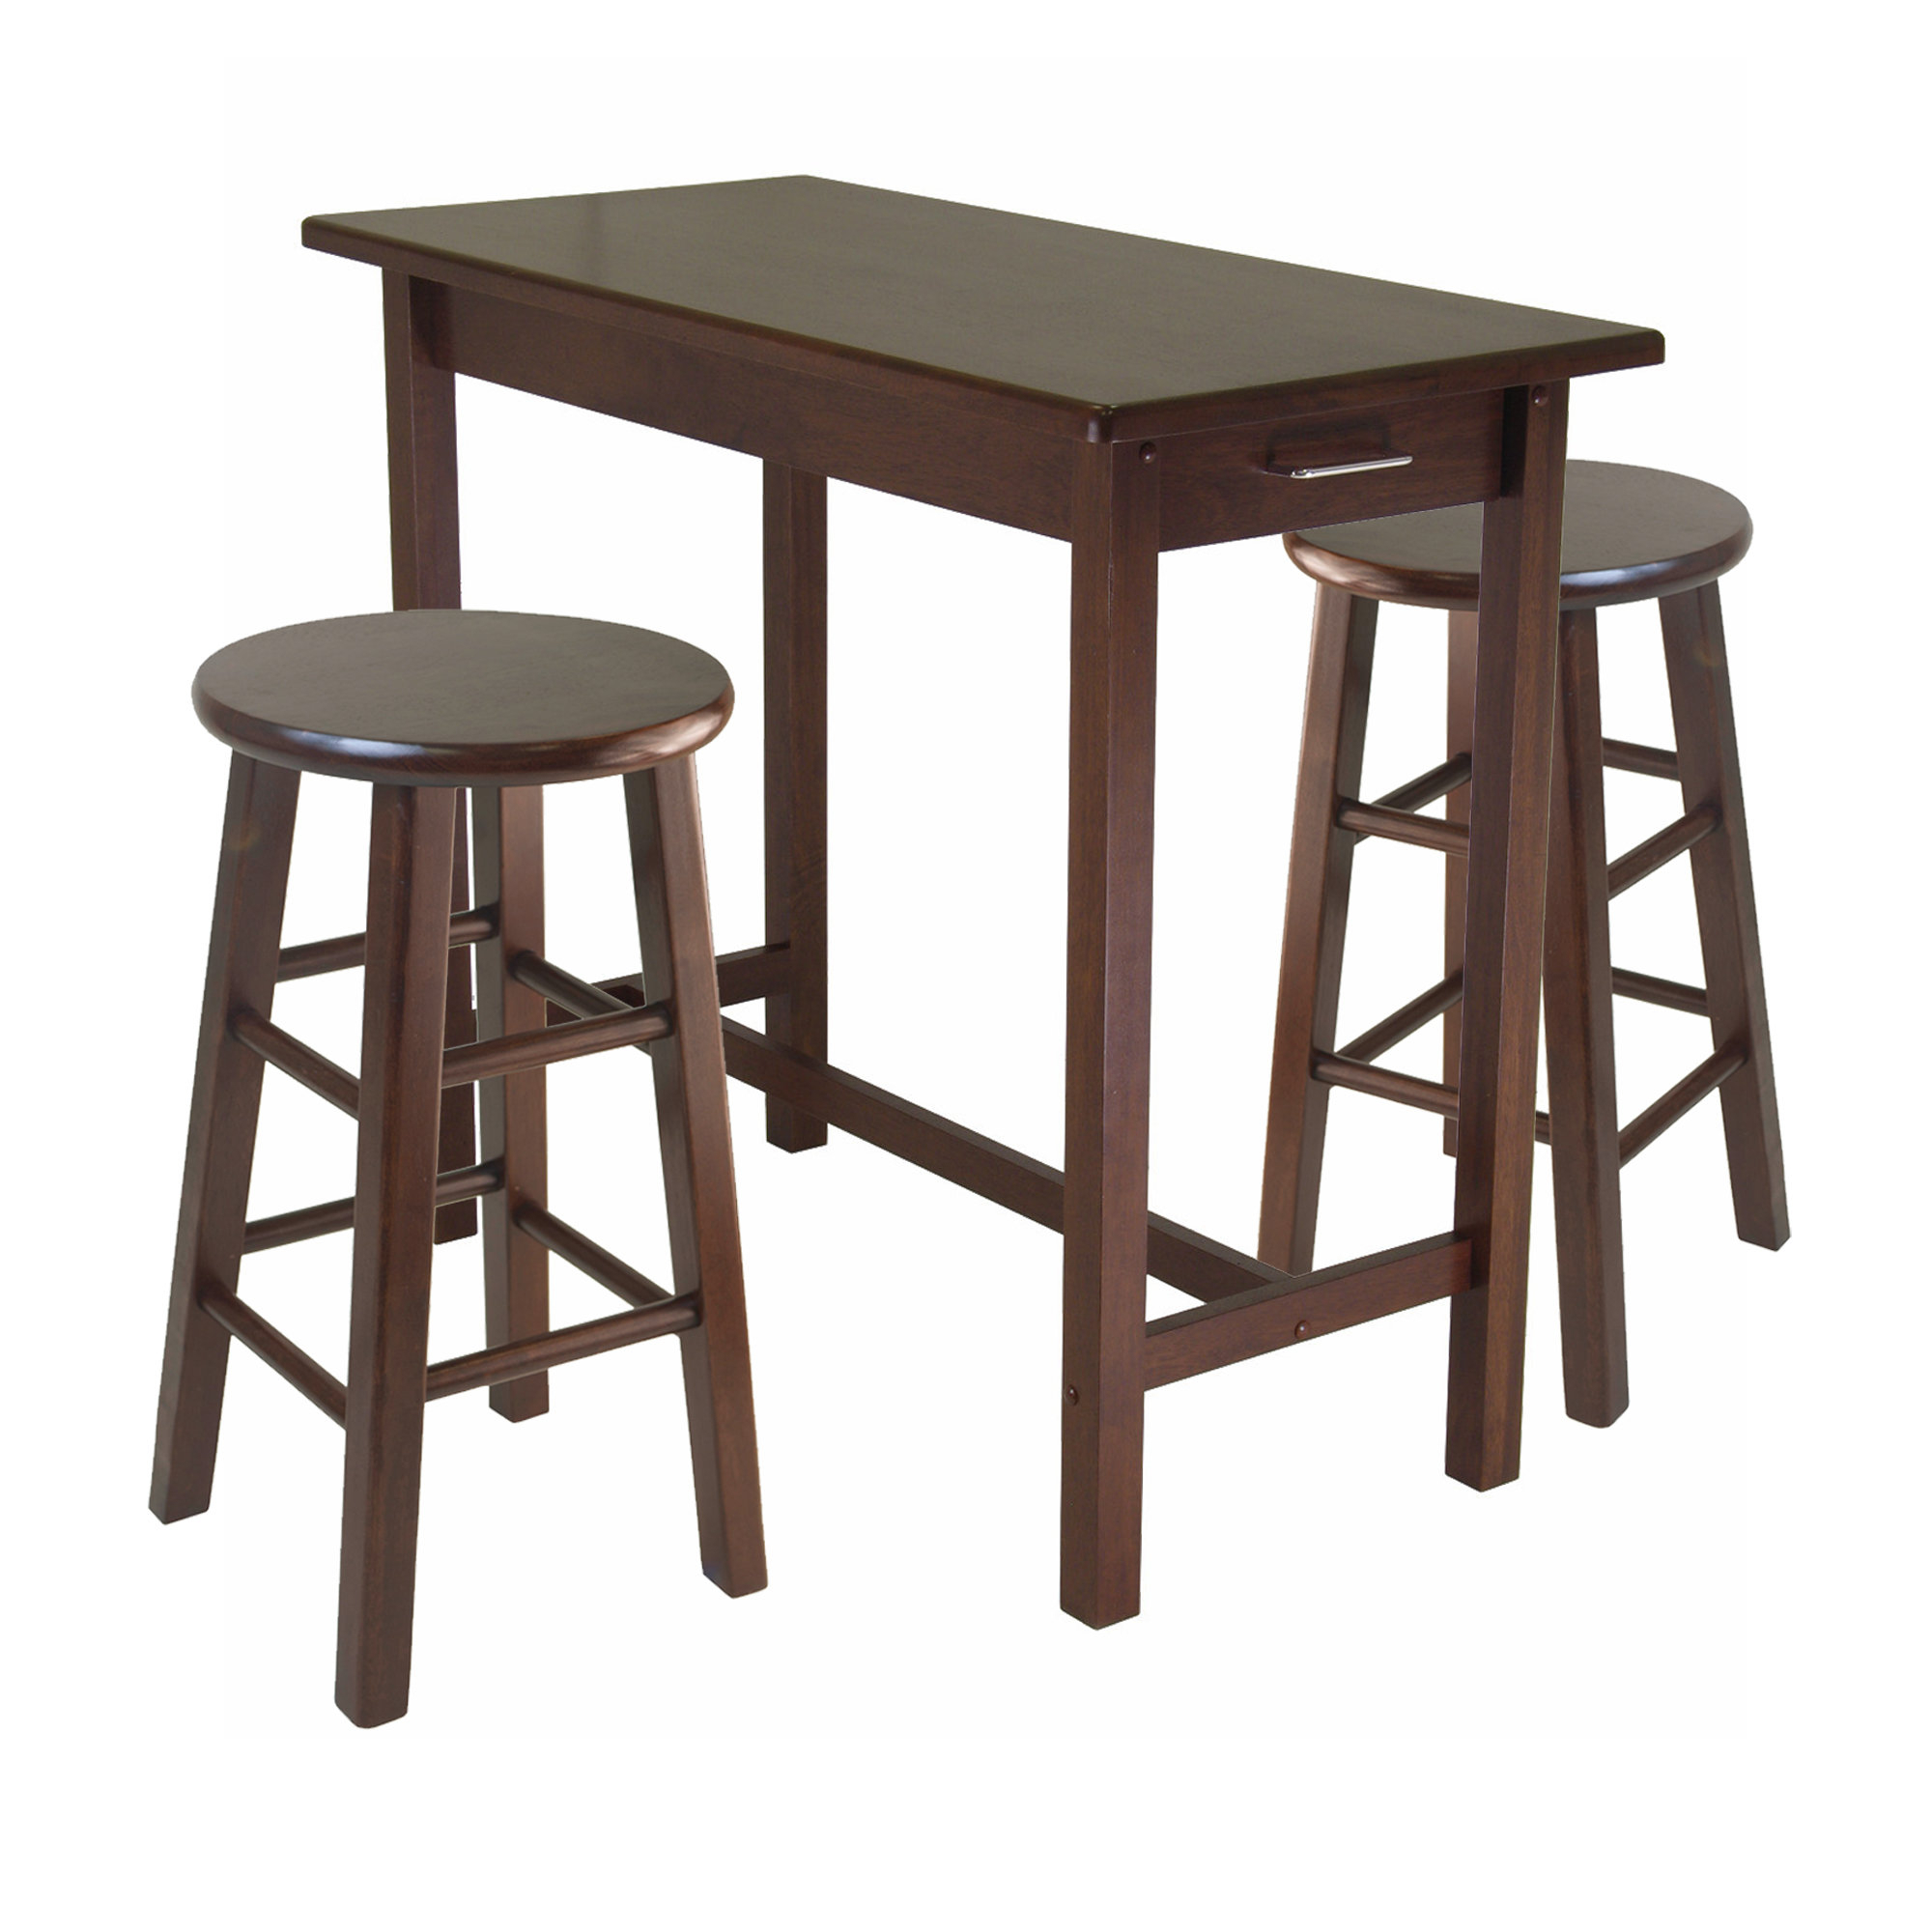 3 Piece Breakfast Dining Set Intended For Favorite 3 Piece Breakfast Dining Sets (View 1 of 20)